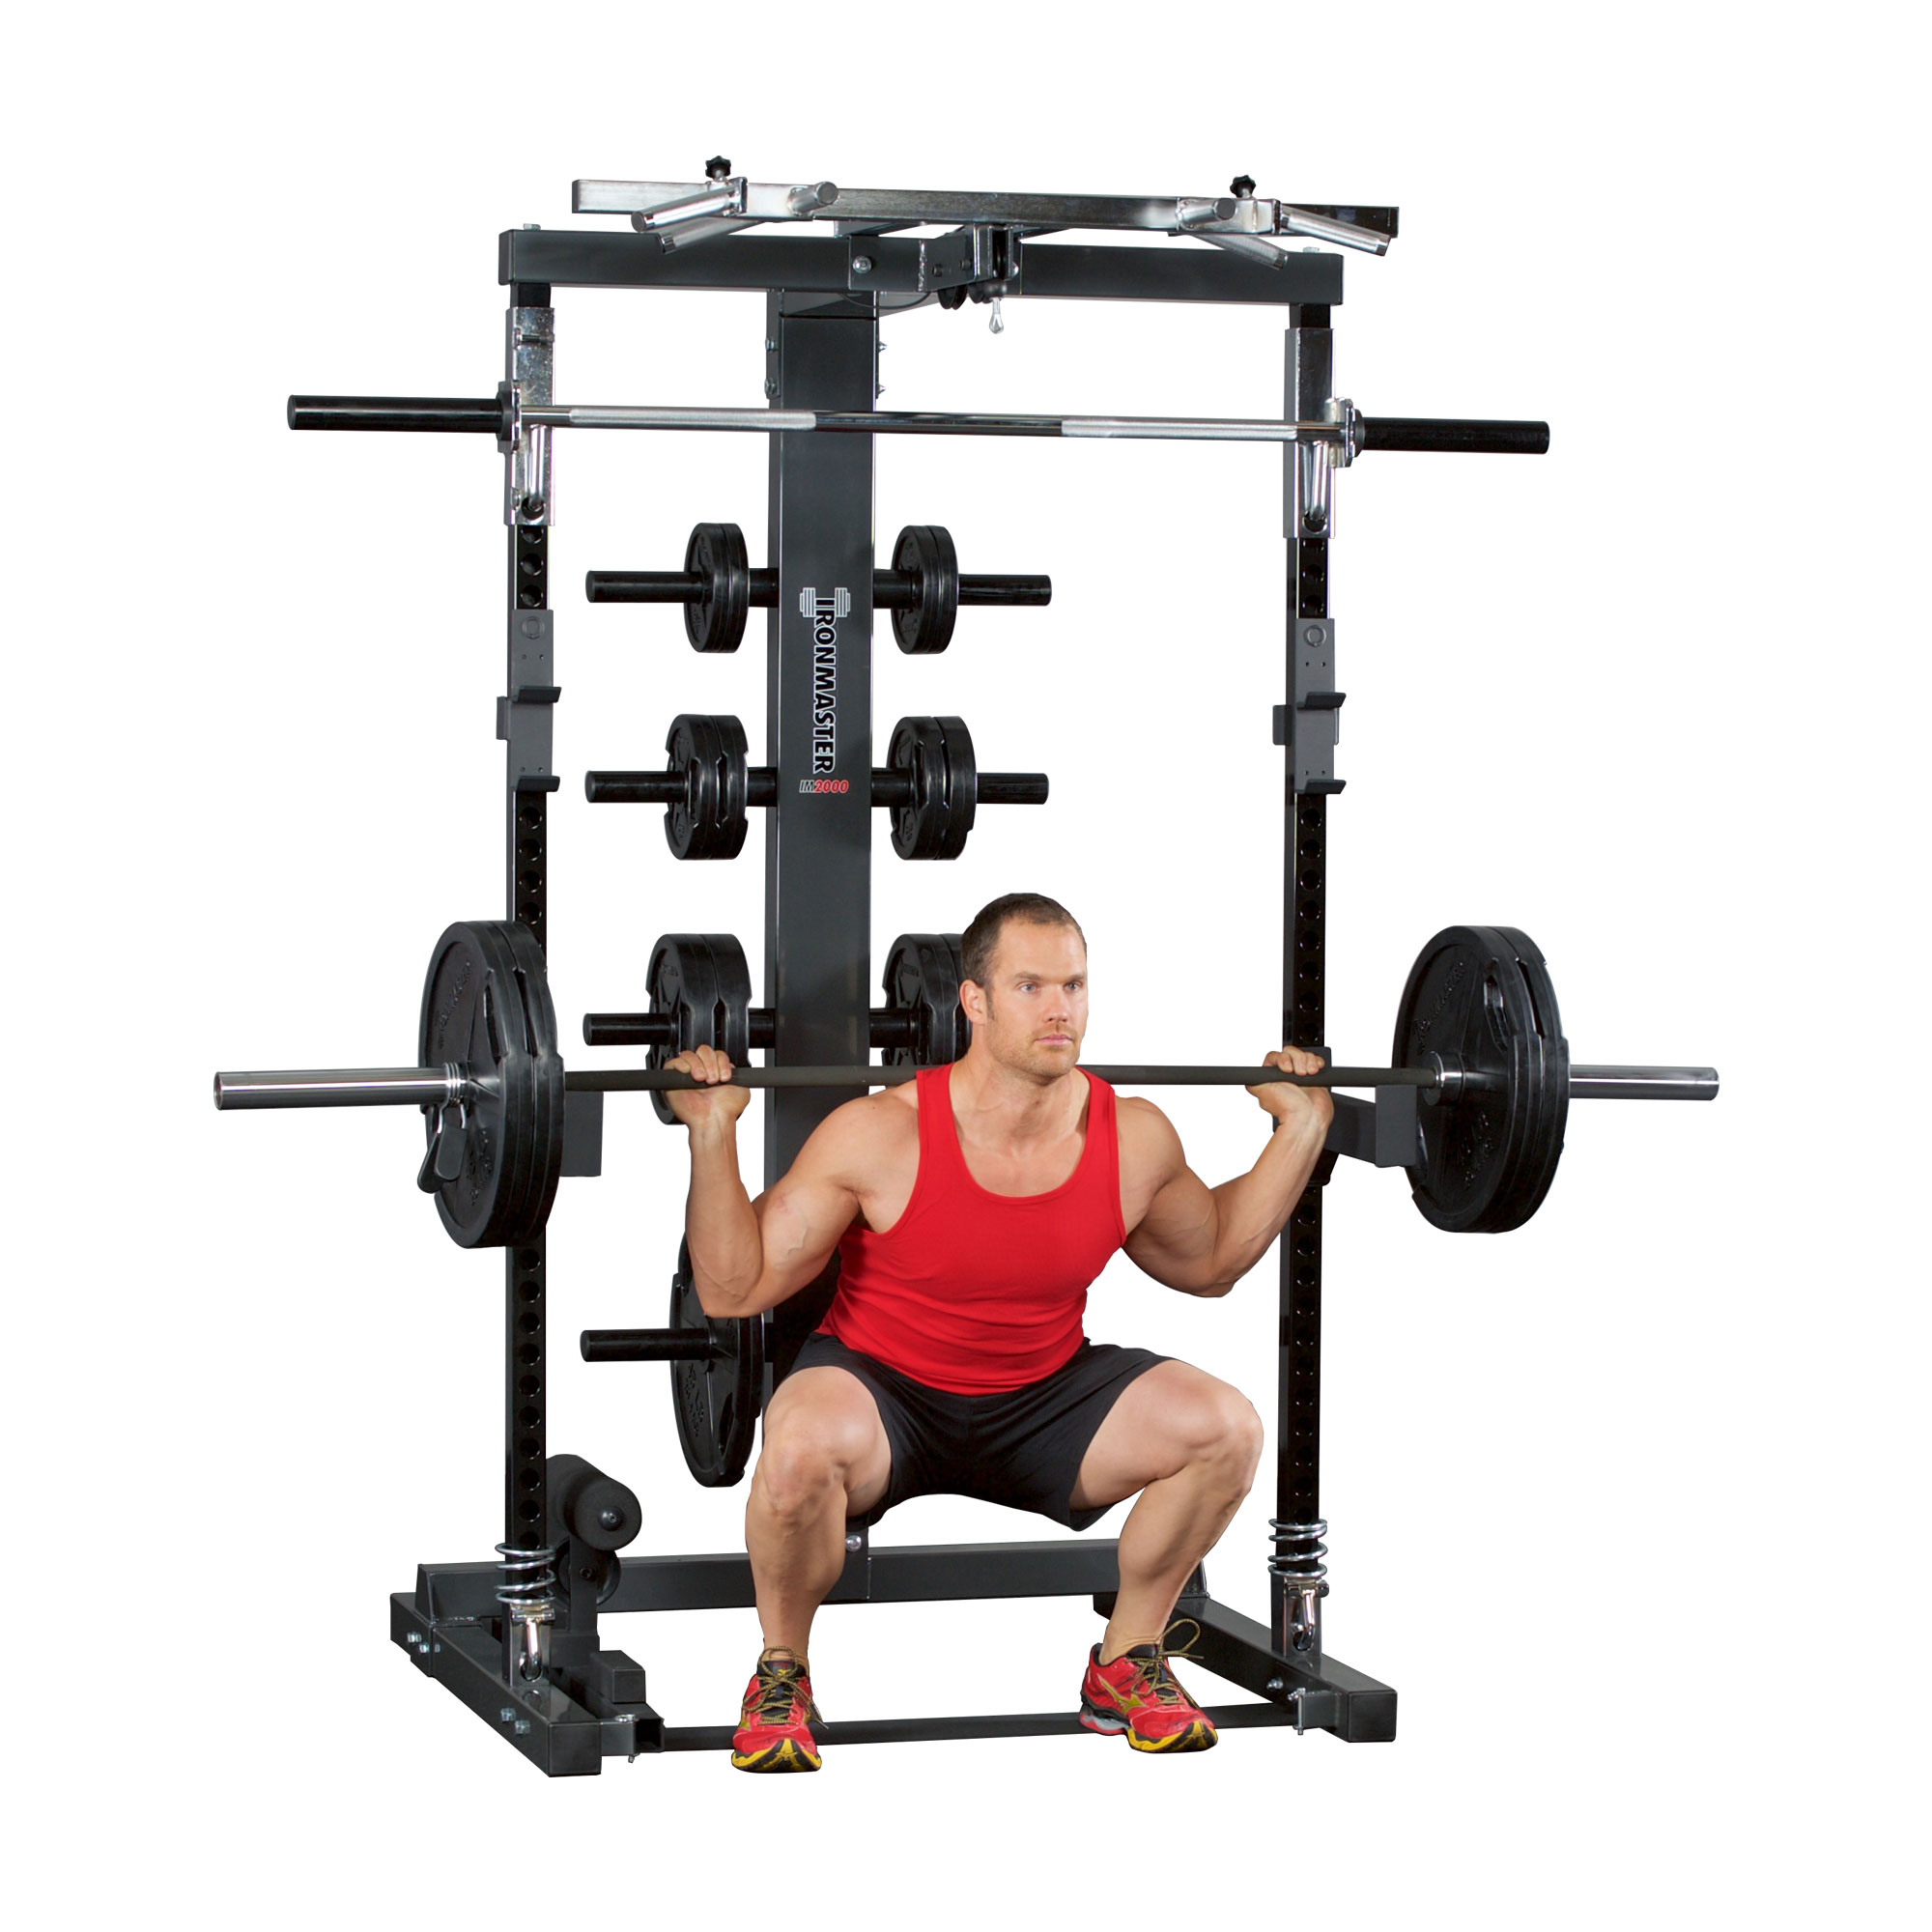 IronmasterUK IM2000 squat position